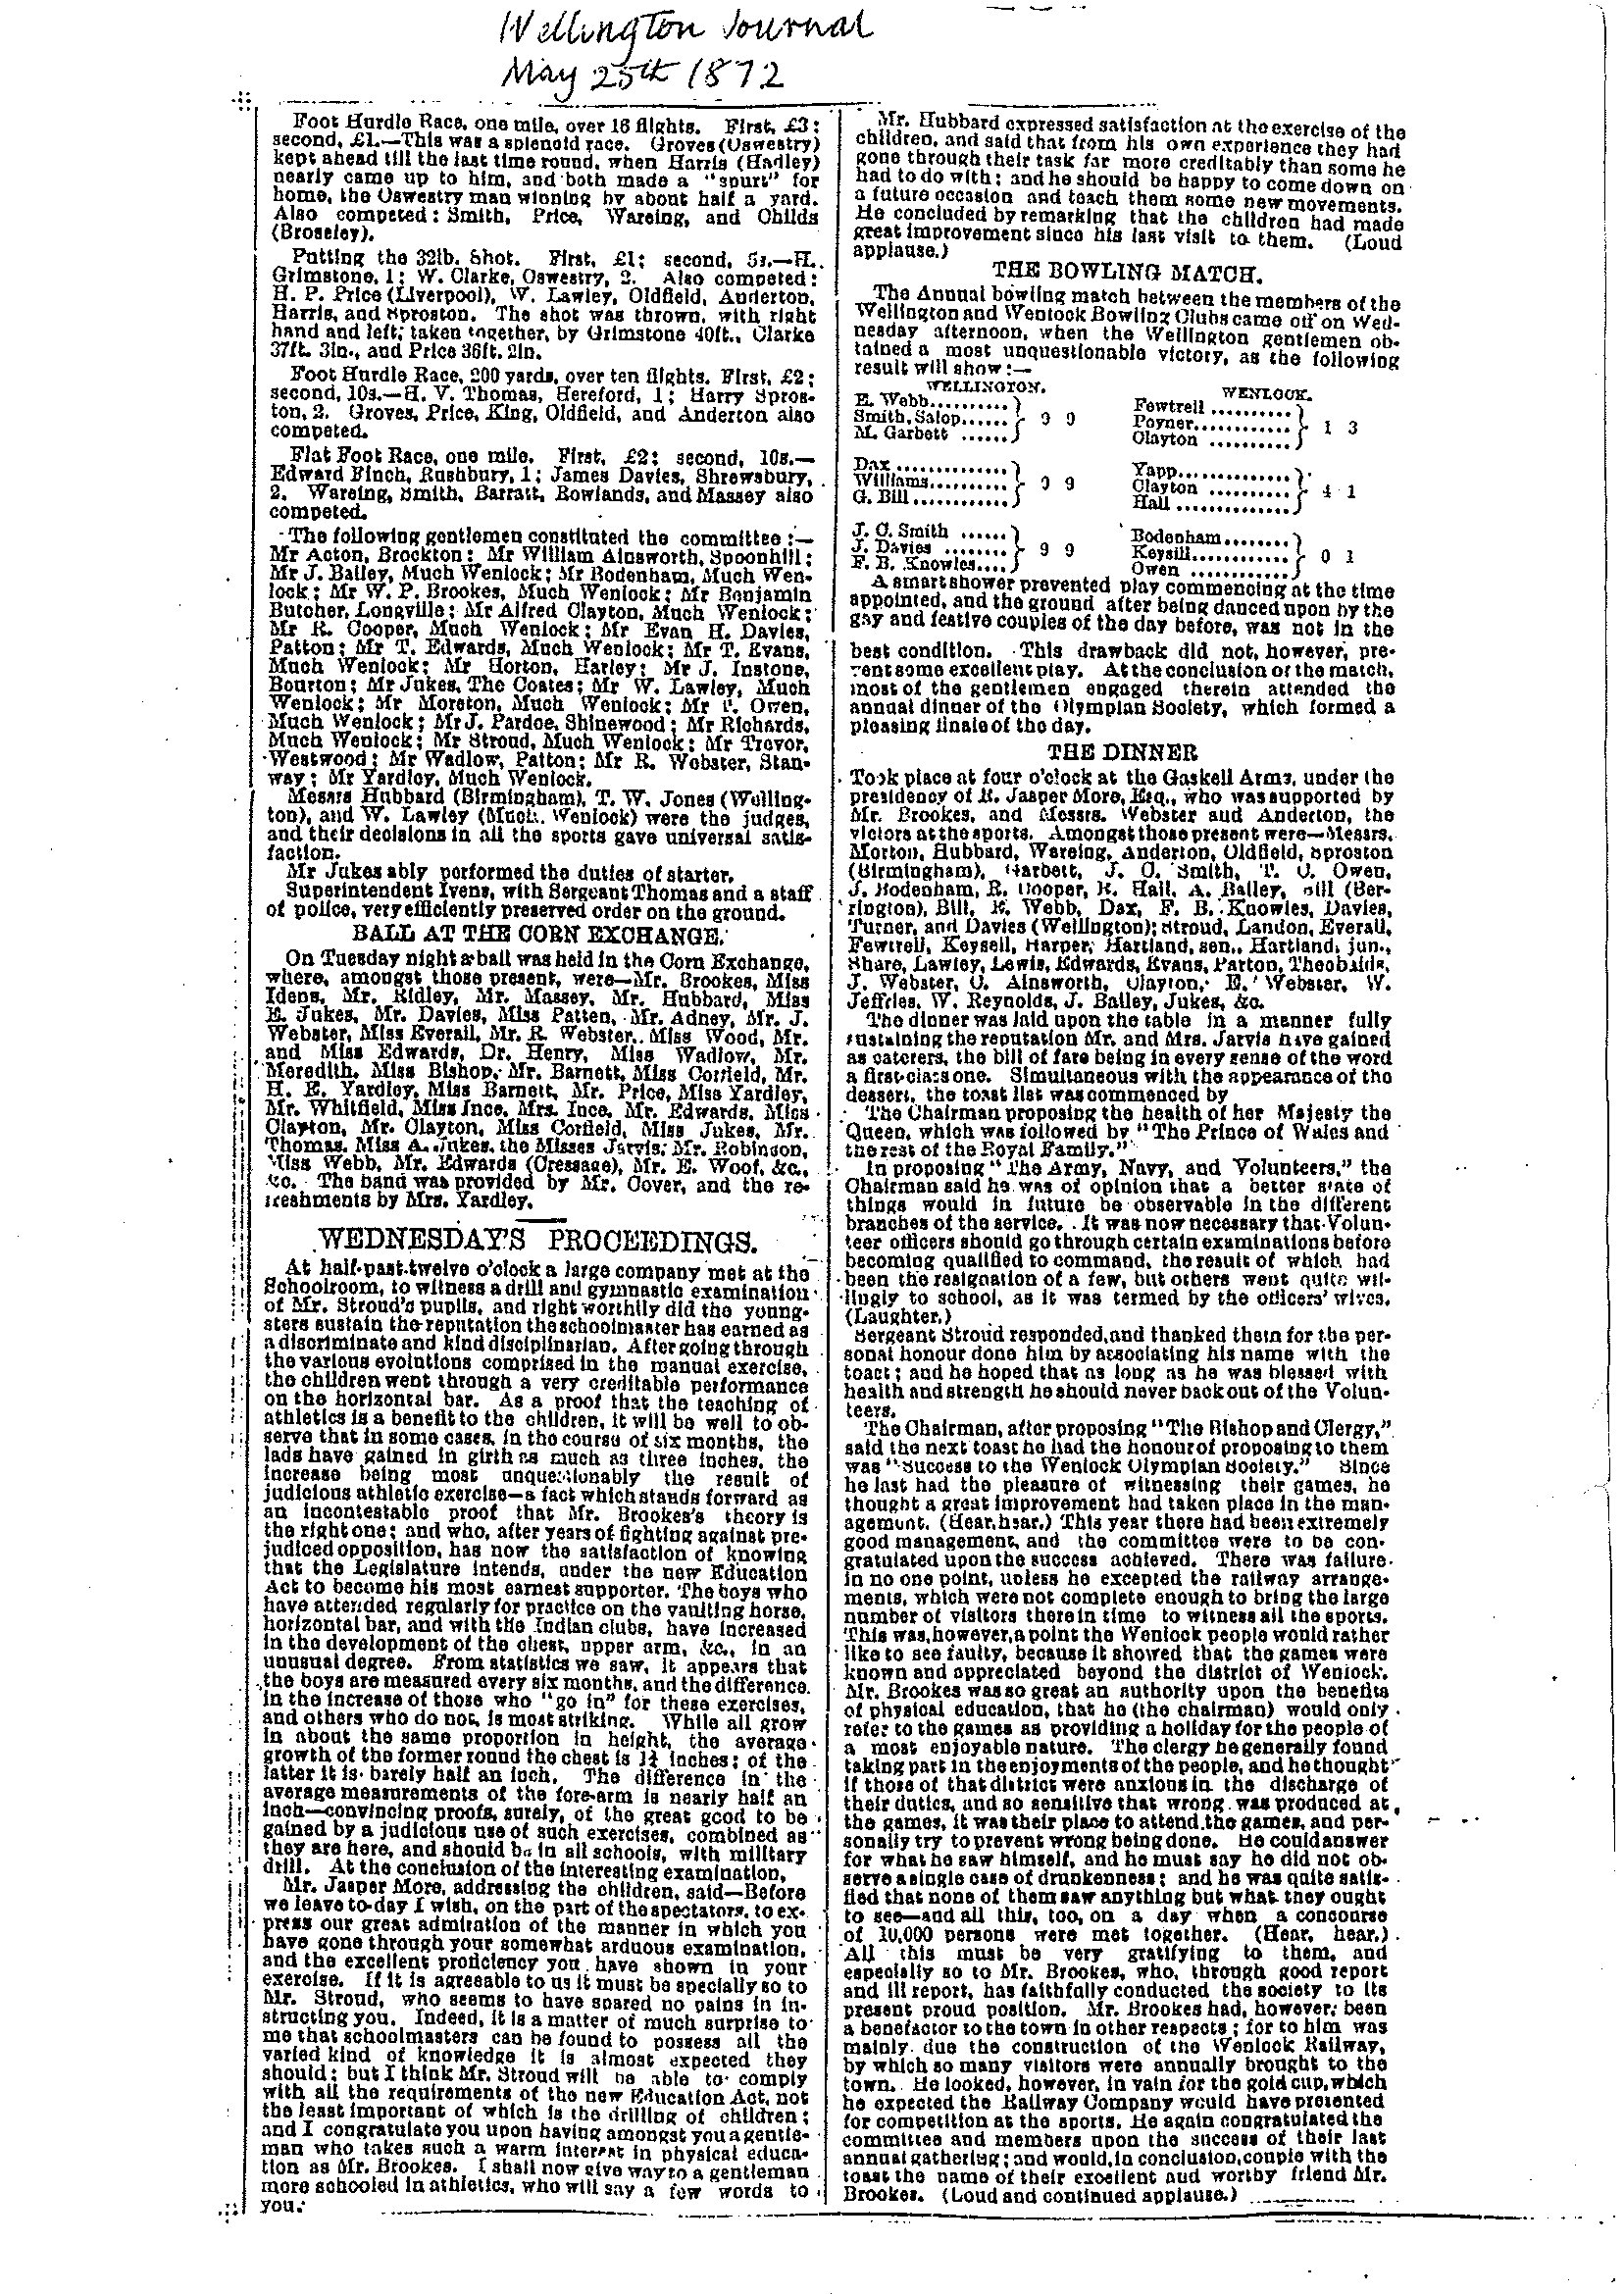 Much Wenlock Bowling Club Wellington Journal - 25th May 1872